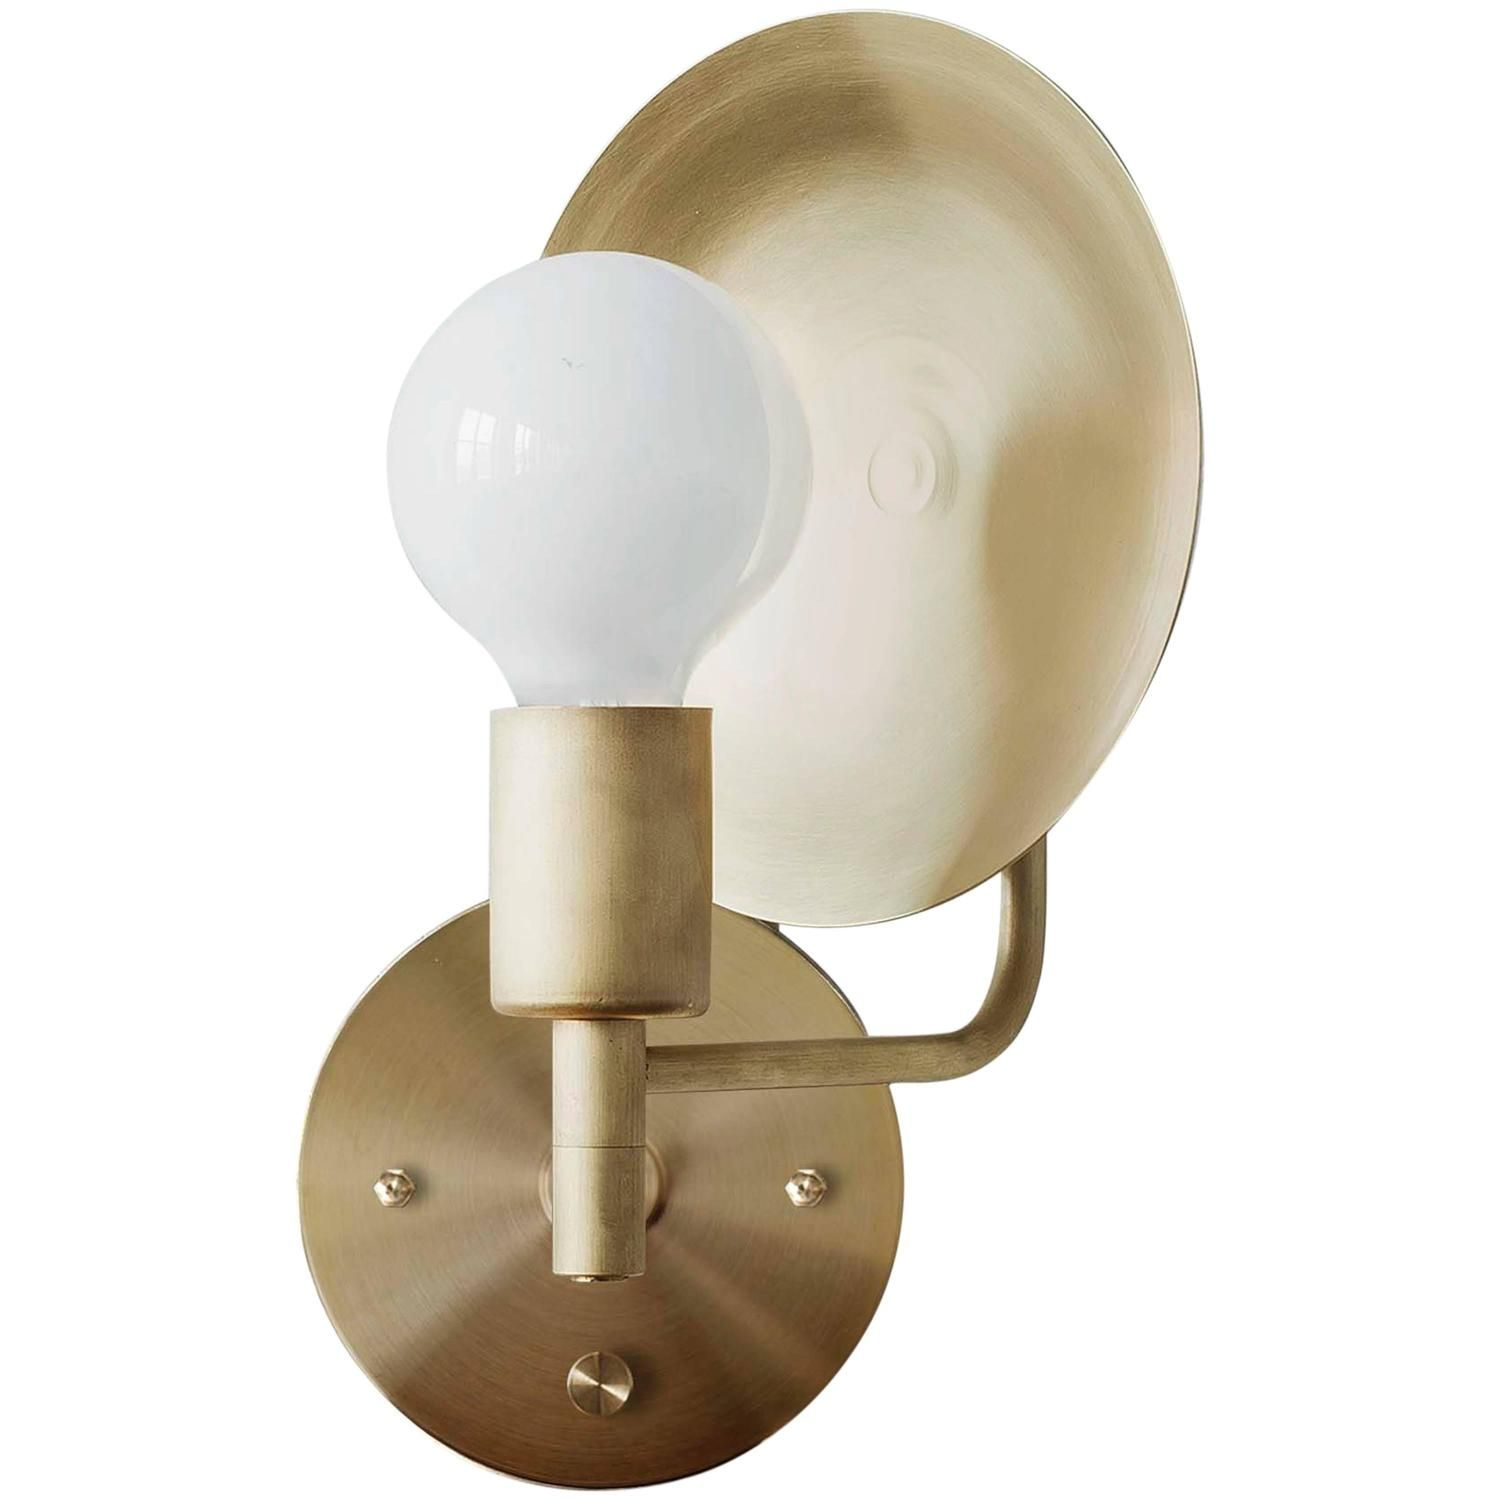 sports shoes c201c b6fe0 Workstead Wall Light / Sconce - Orbit Spun Swivel Convex ...